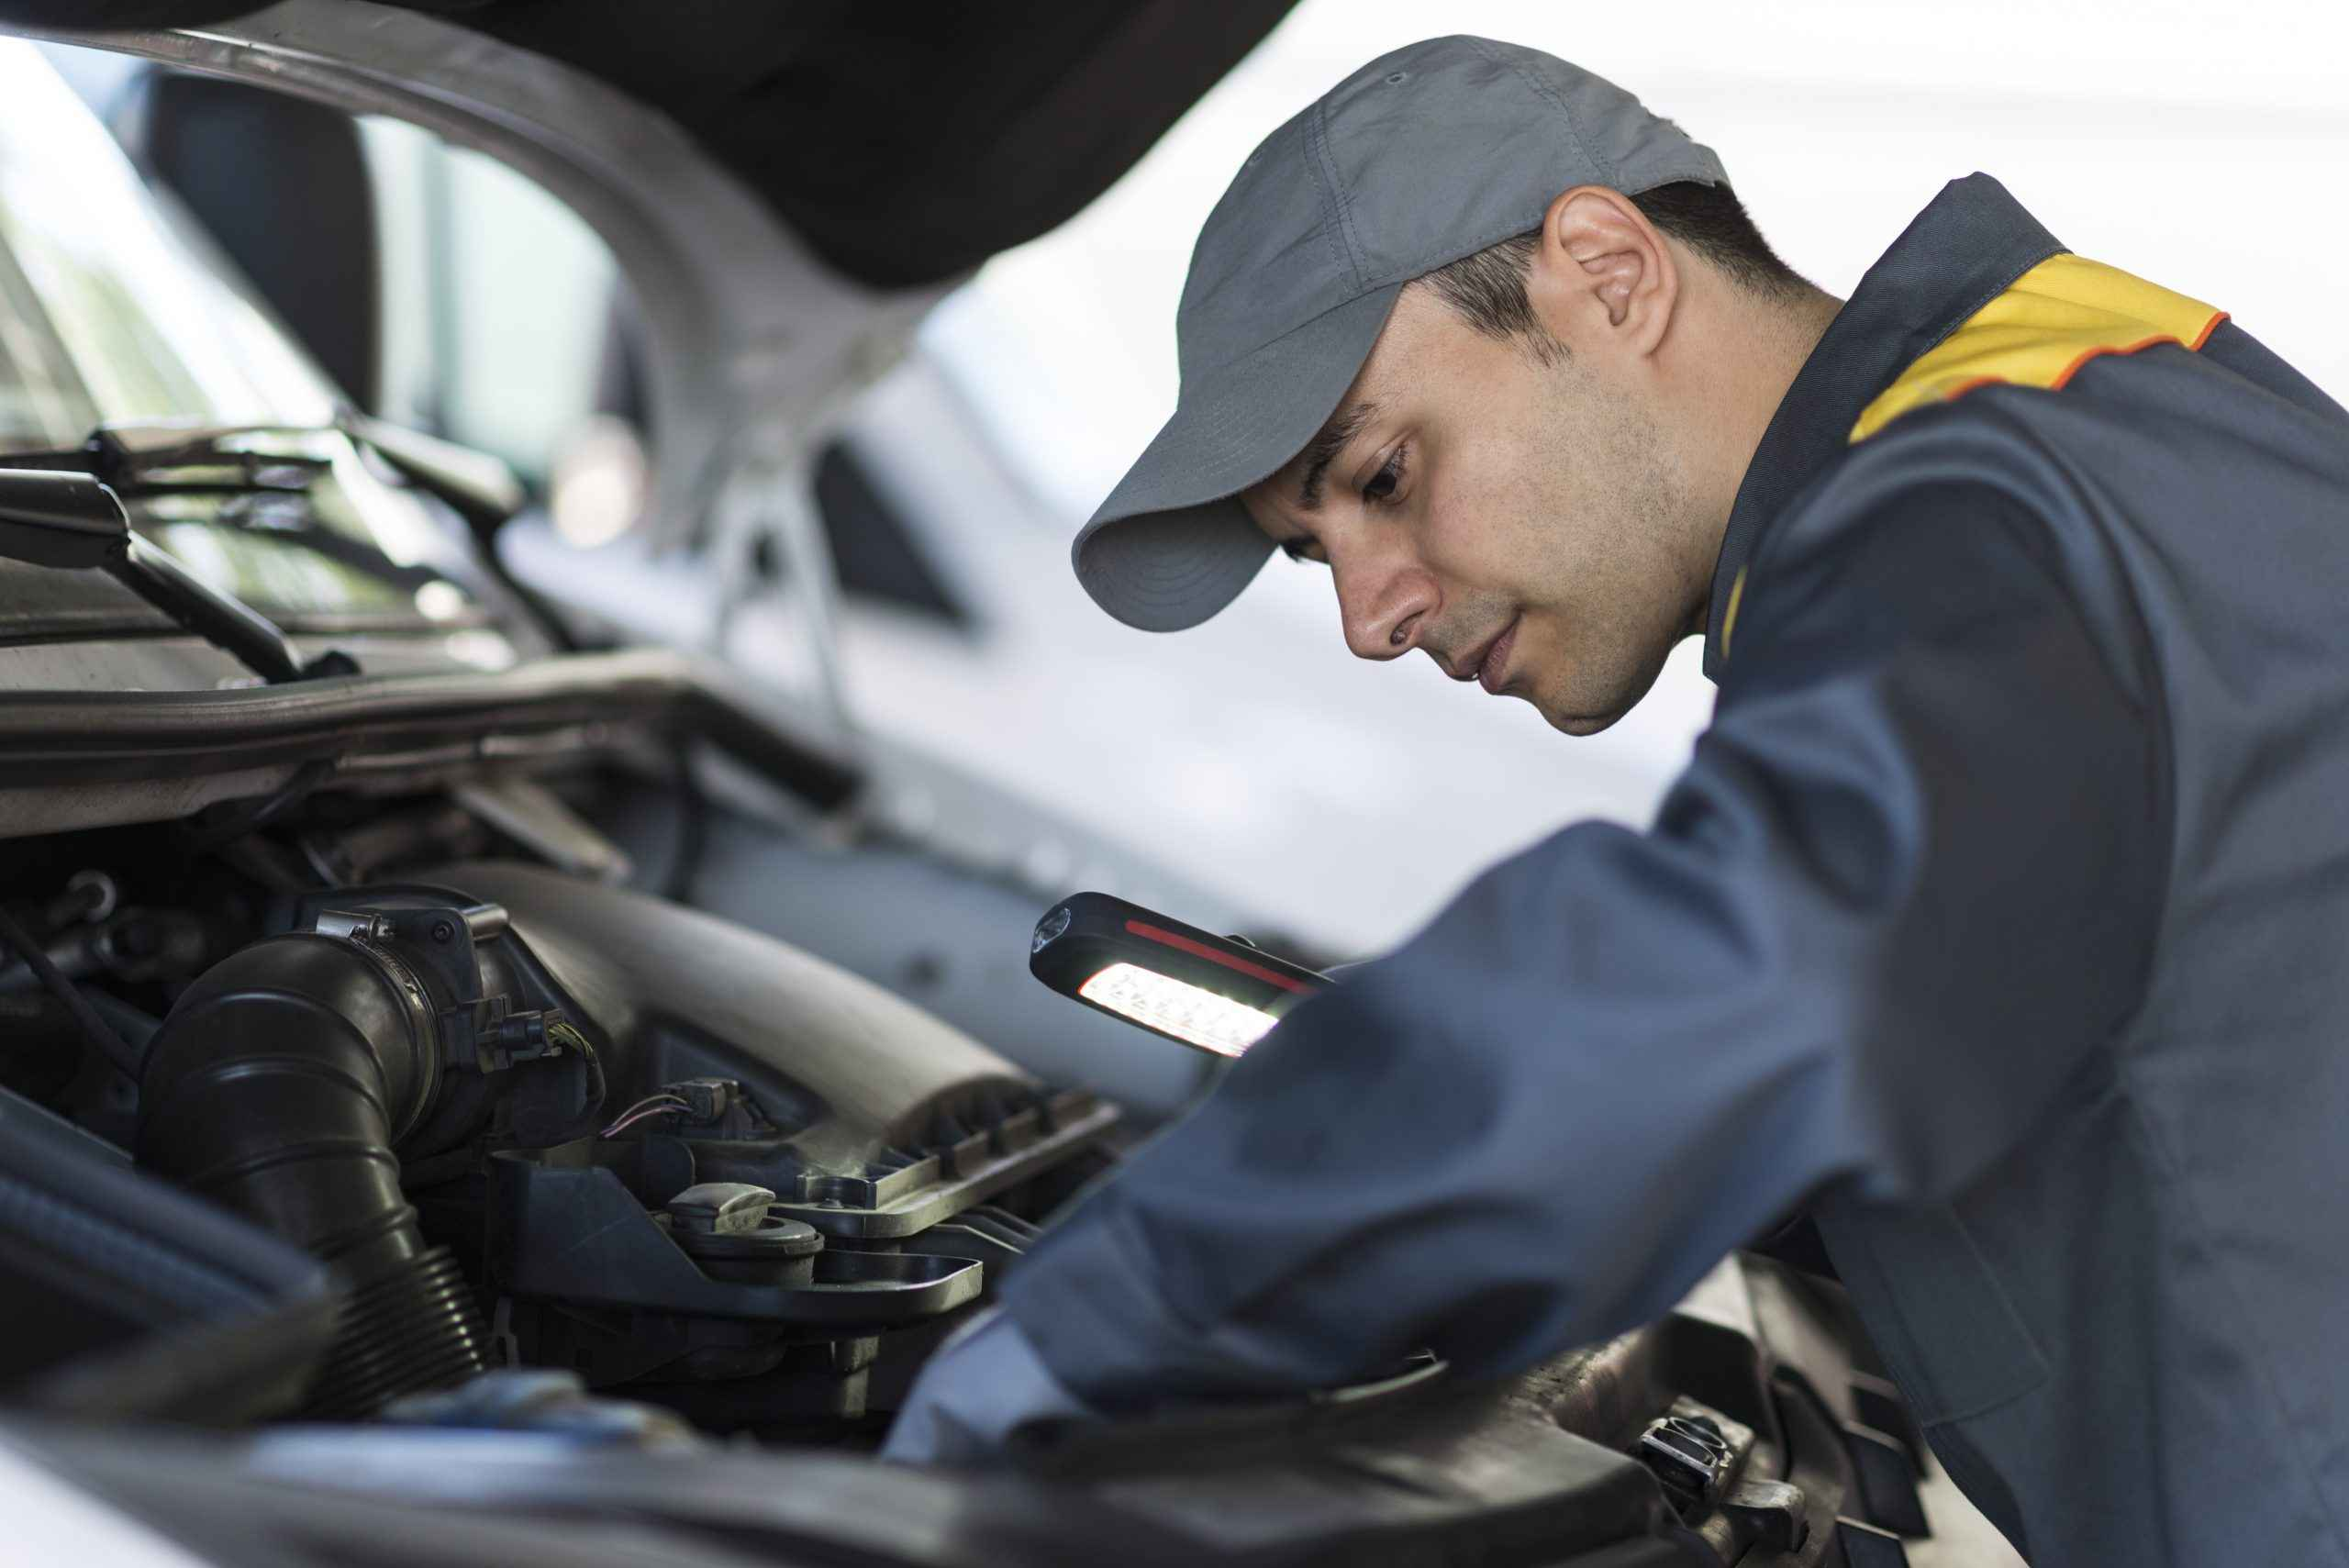 Mechanic inspecting a vehicle under the bonnet